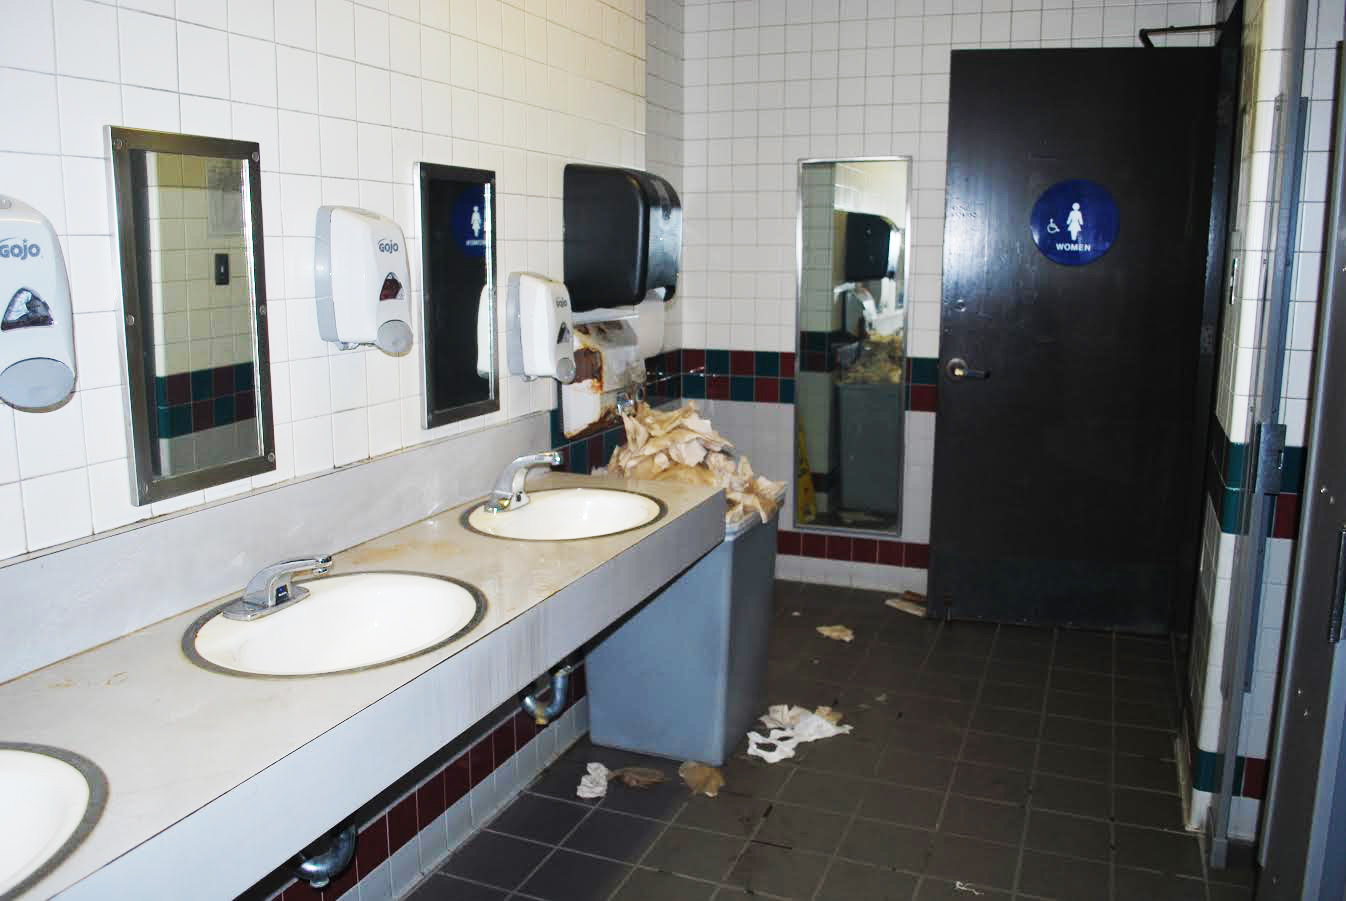 A Porcelain Match Made In Heaven Or Hell Ranking The Best And Worst De Anza Bathrooms La Voz News